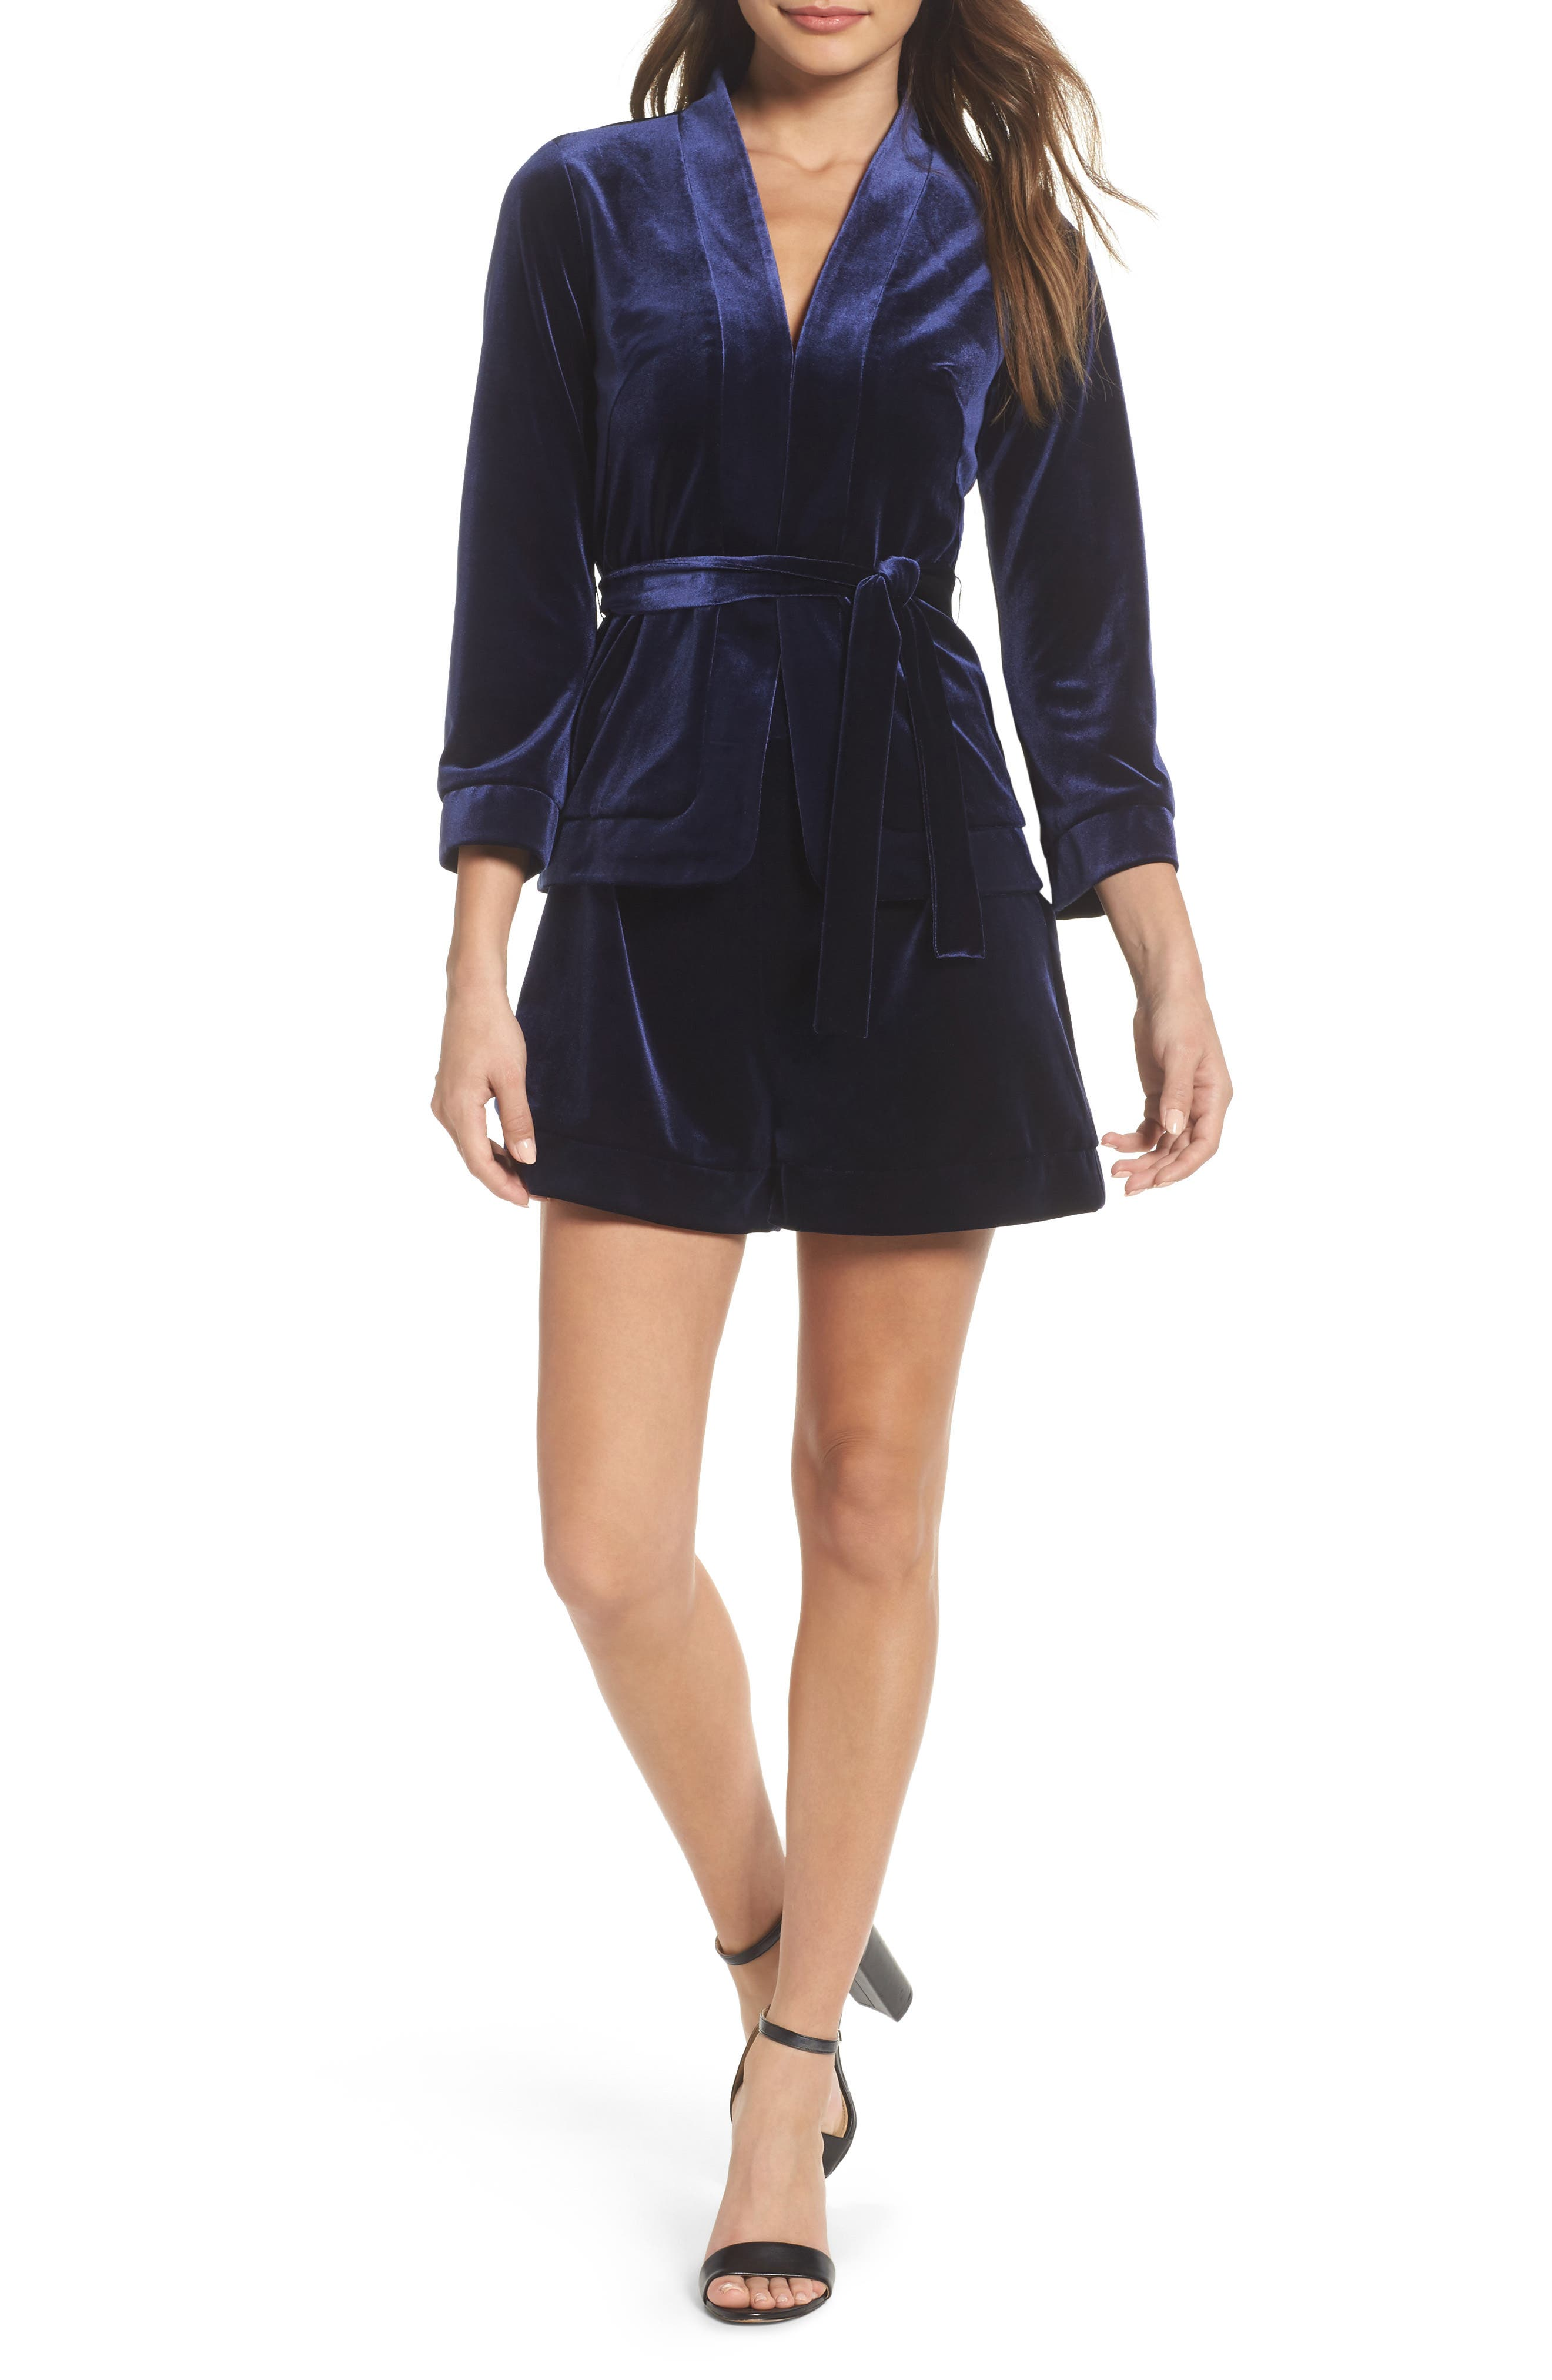 After Hours Velvet Two-Piece Dress,                         Main,                         color, Navy